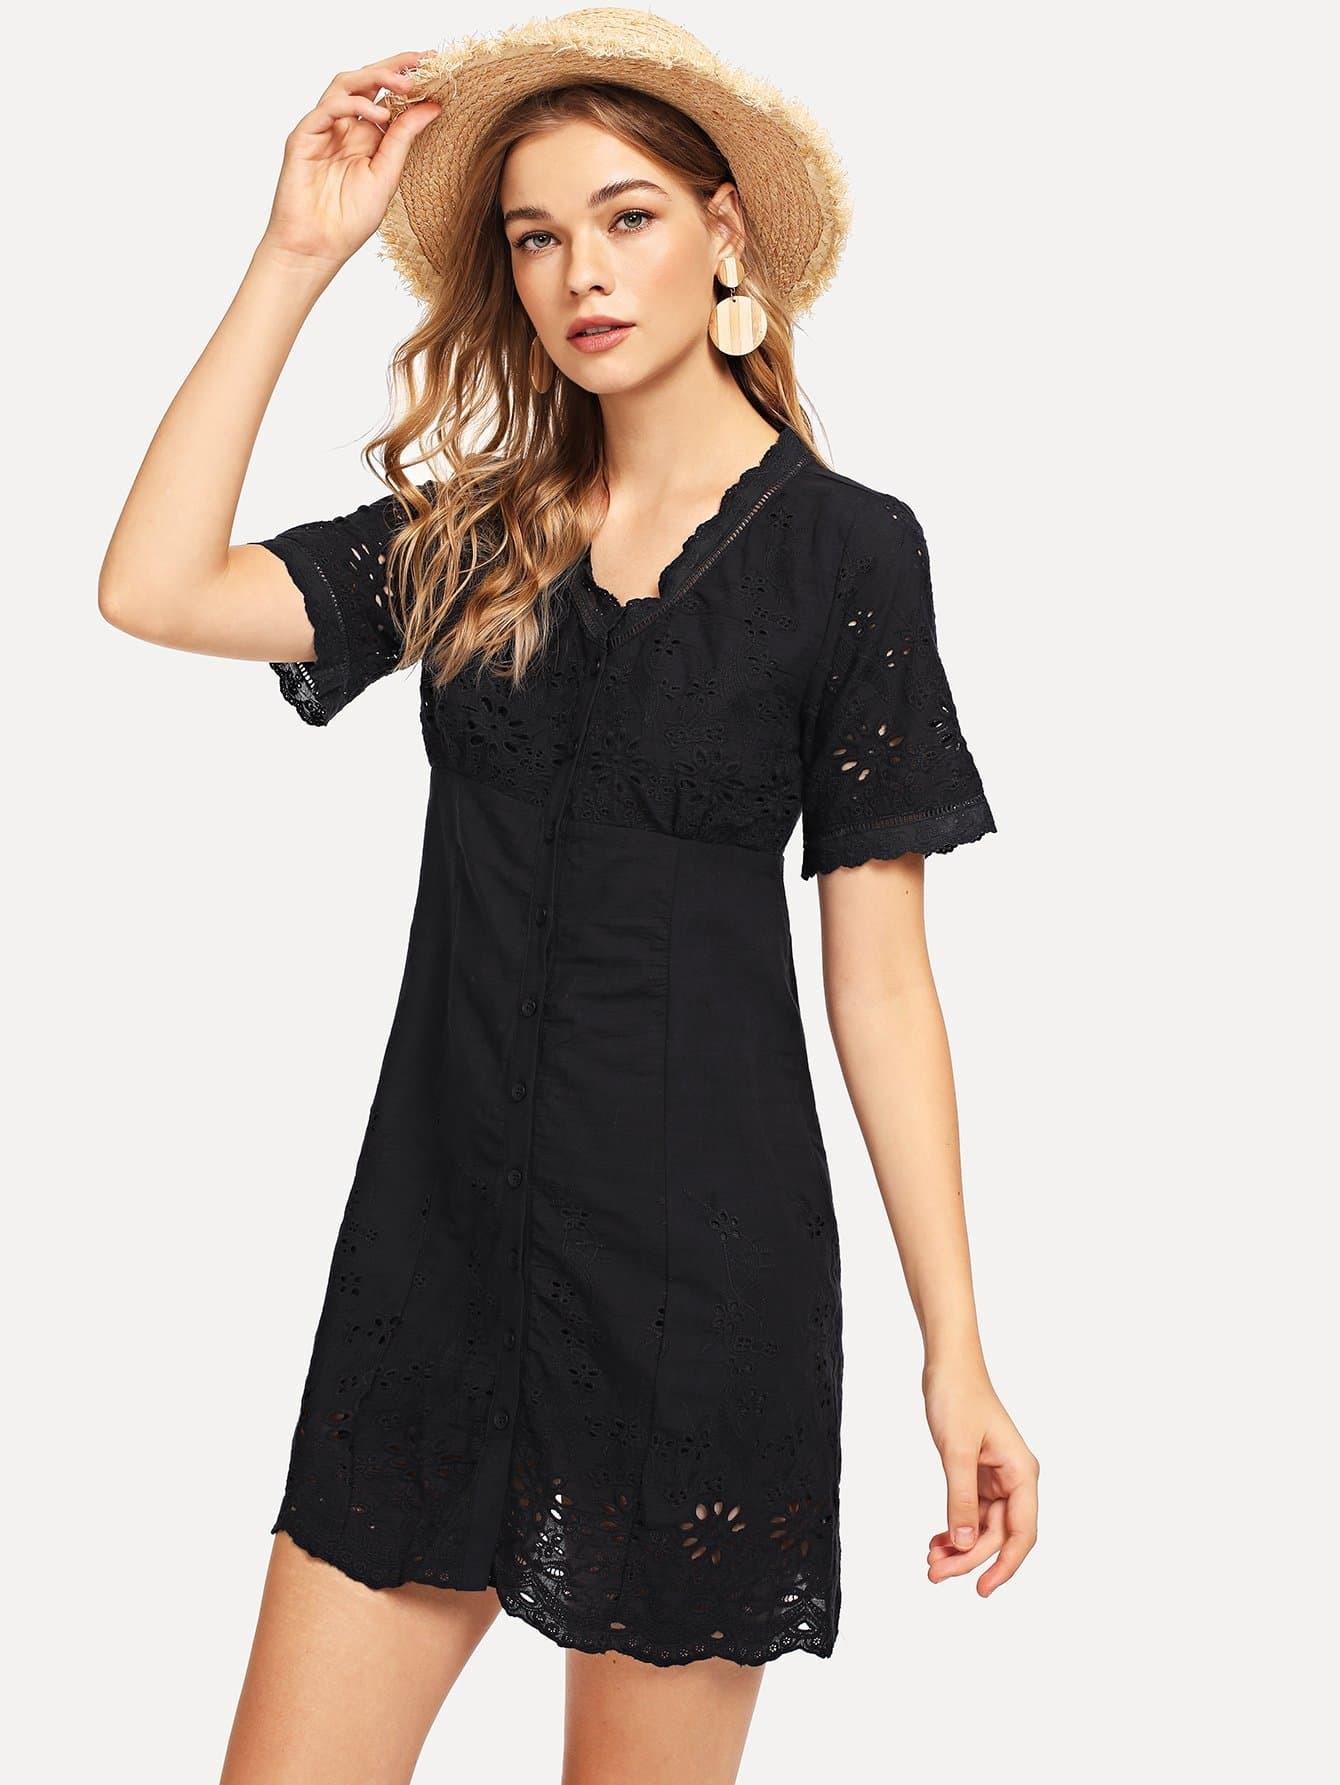 Laddering Lace Detail Eyelet Embroidered Button Up Dress strappy dress with lace up detail